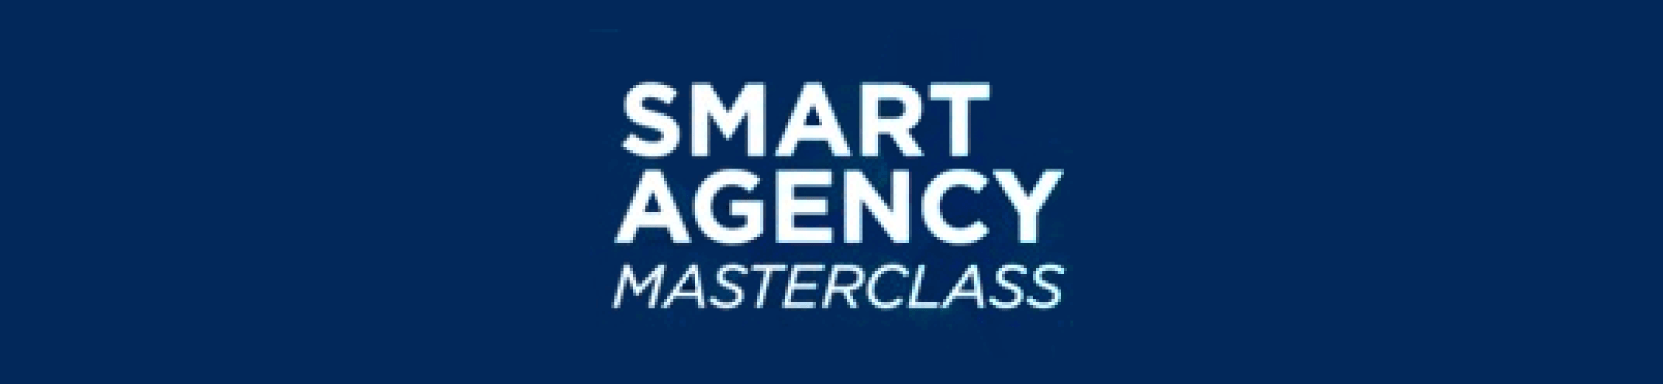 Smart Agency Masterclass Podcast